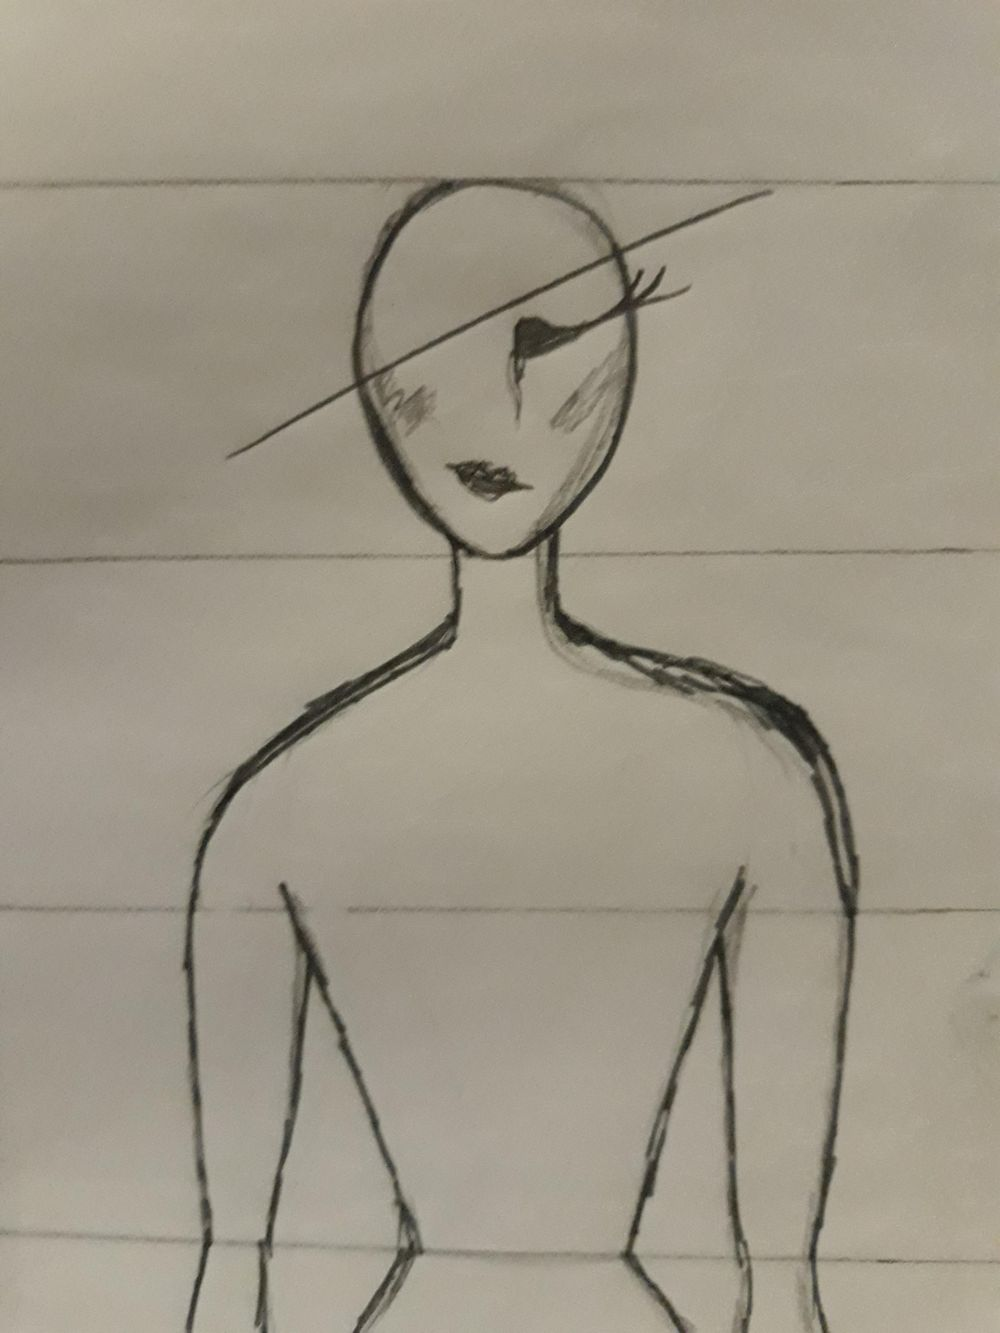 First ever attempt on figure drawing - image 3 - student project